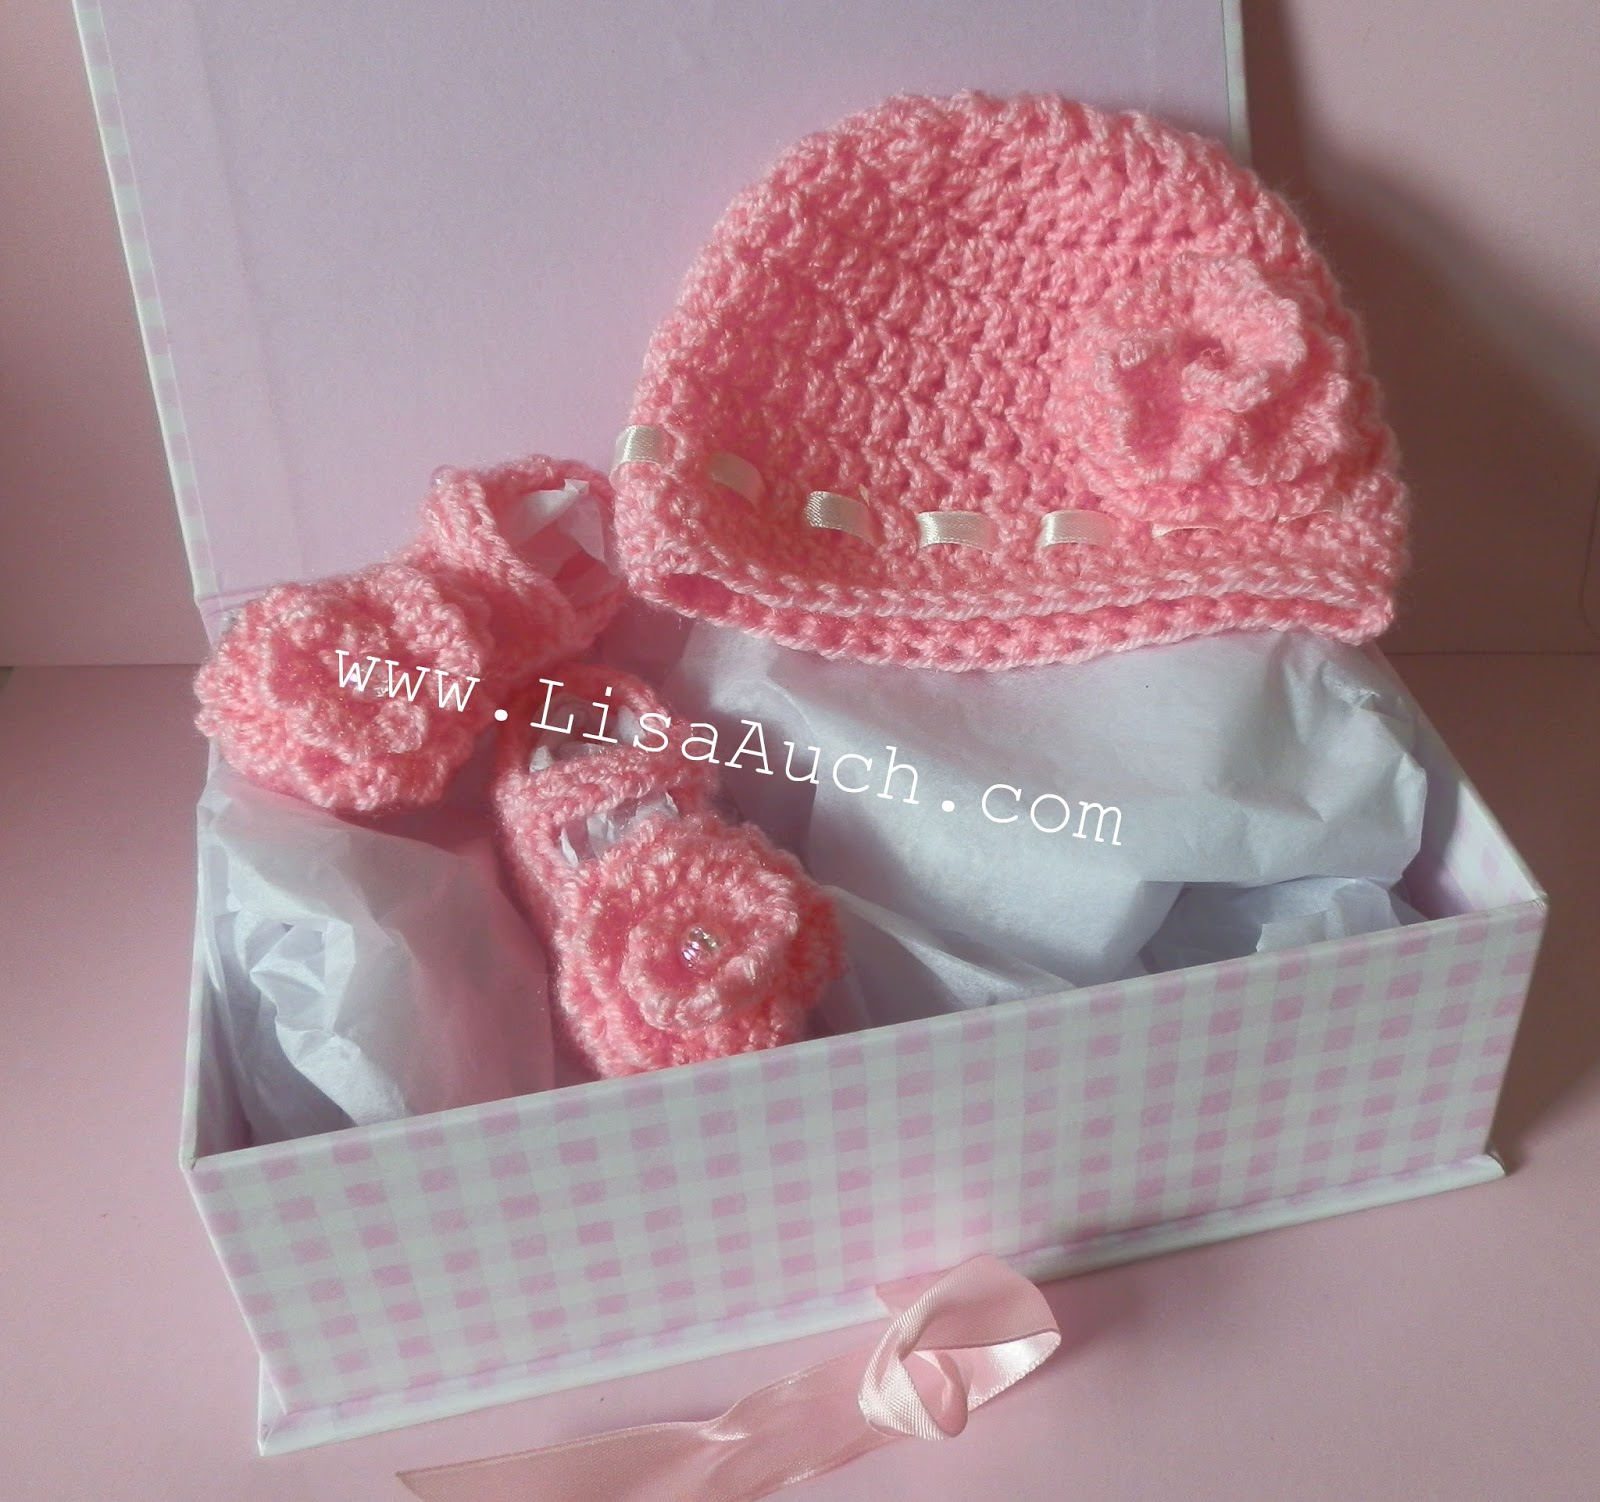 Crochet Baby Set Patterns ? Crochet Club